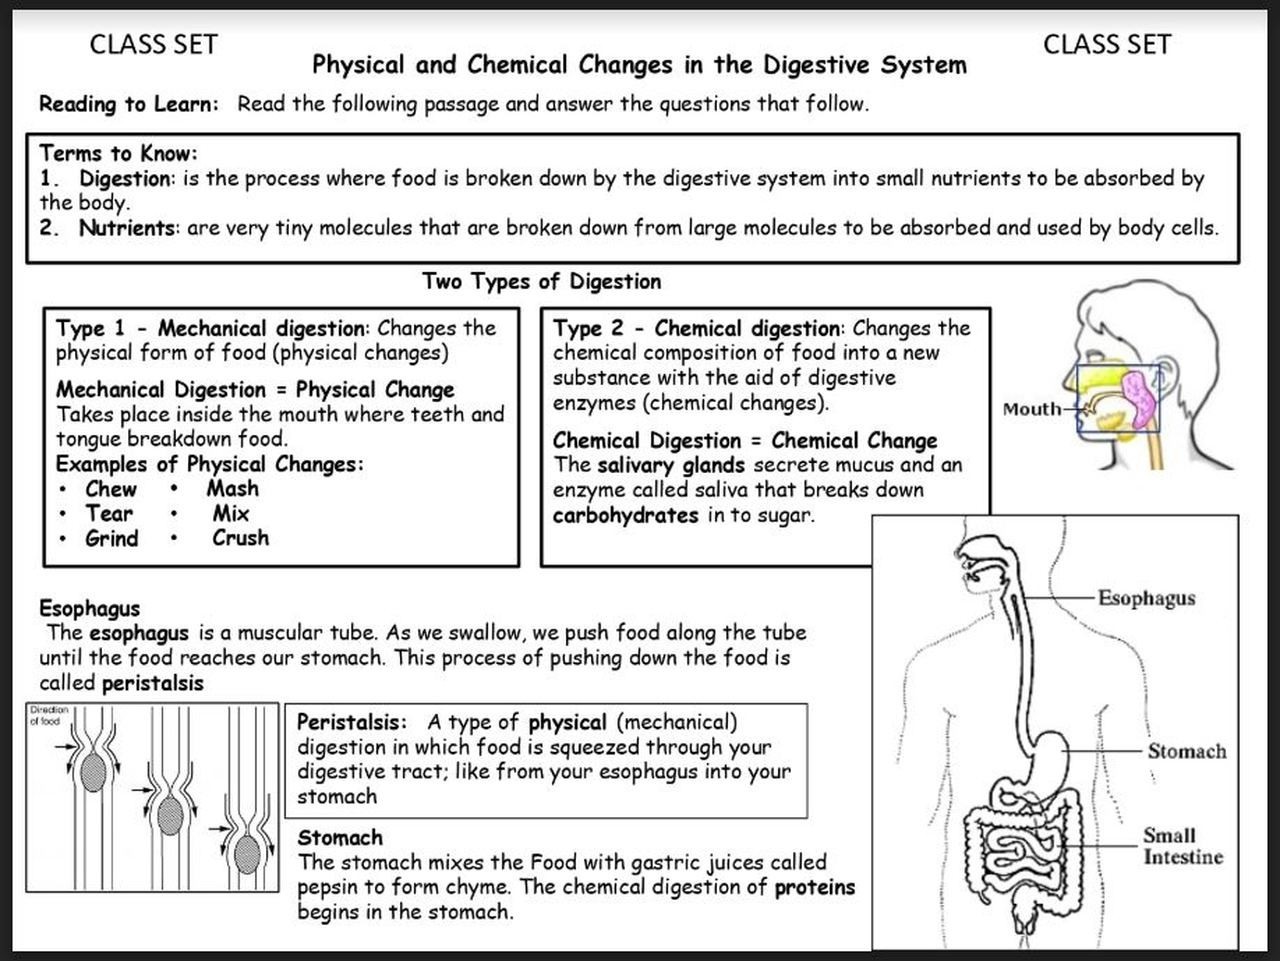 Digestive System Worksheets Middle School Physical and Chemical Changes In the Digestive System